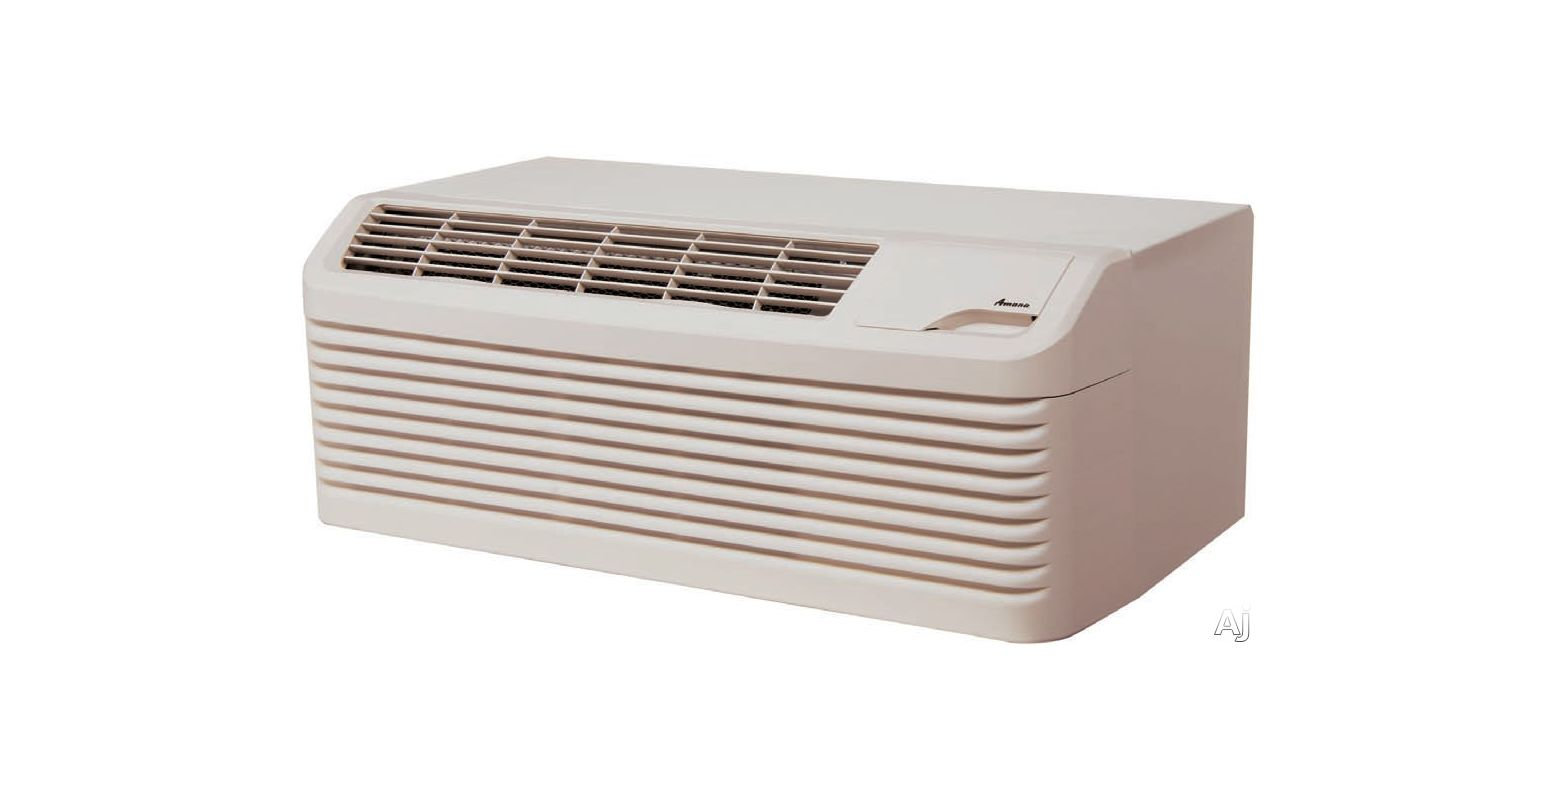 Amana PTC153G35AXXX 15,000 BTU Packaged Terminal Air Conditioner with 3.5 kW Ele photo